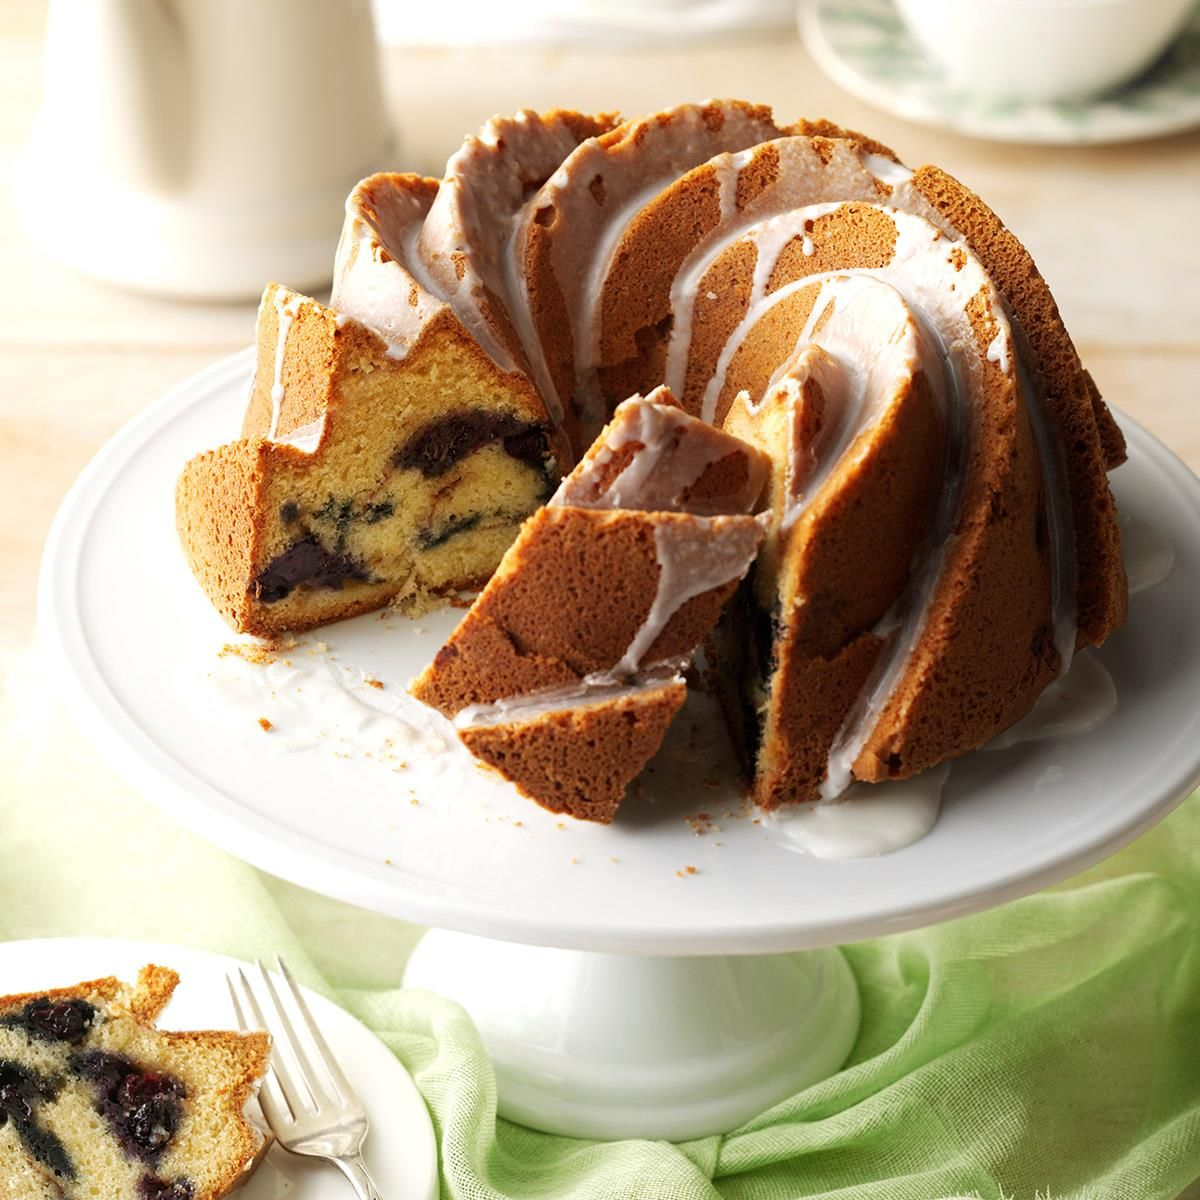 Blueberry Sour Cream Coffee Cake Recipe (With images